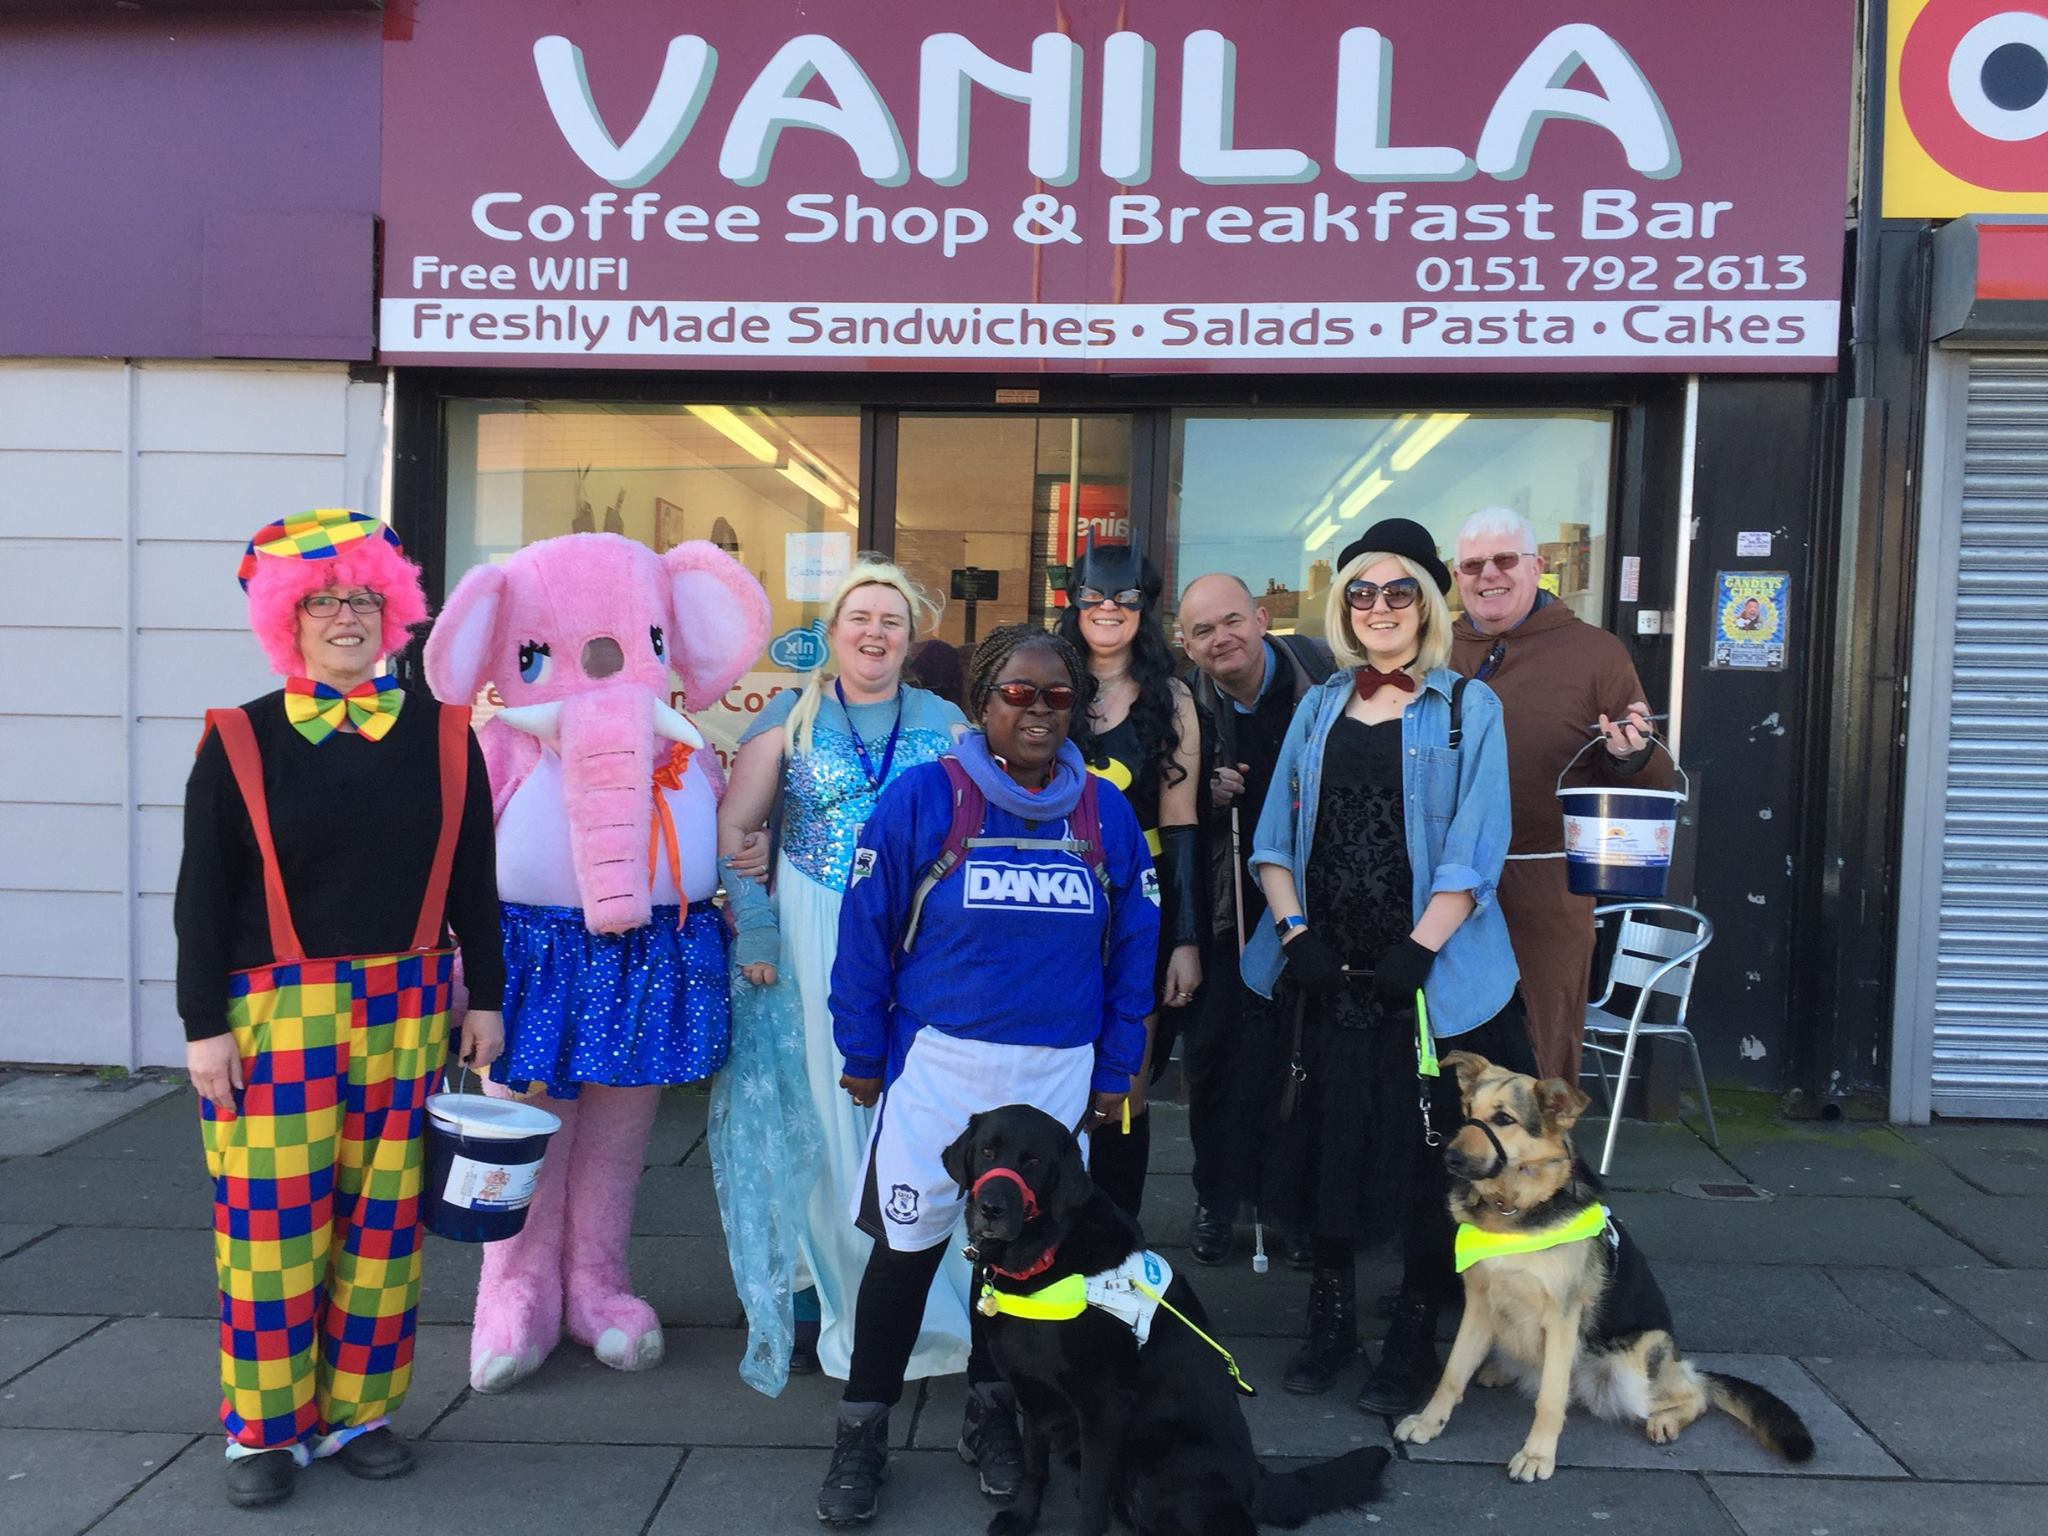 http://Eight%20service%20users,%20staff%20and%20volunteers%20wearing%20very%20silly%20costumes%20standing%20outside%20a%20cafe%20with%20a%20collection%20bucket.